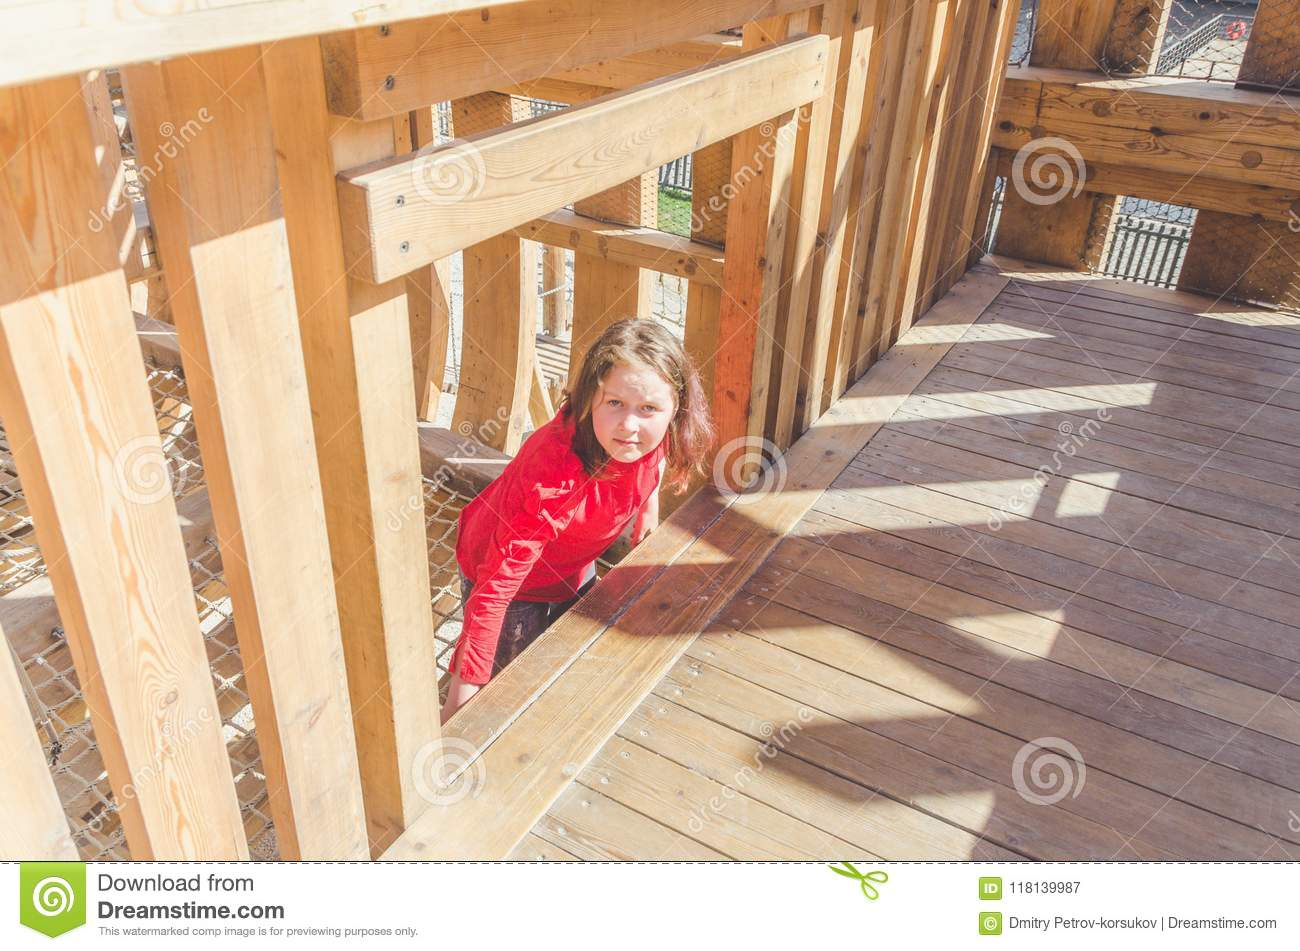 Girl On A Wooden Playground In The Form Of A Pirate Ship Stock Image